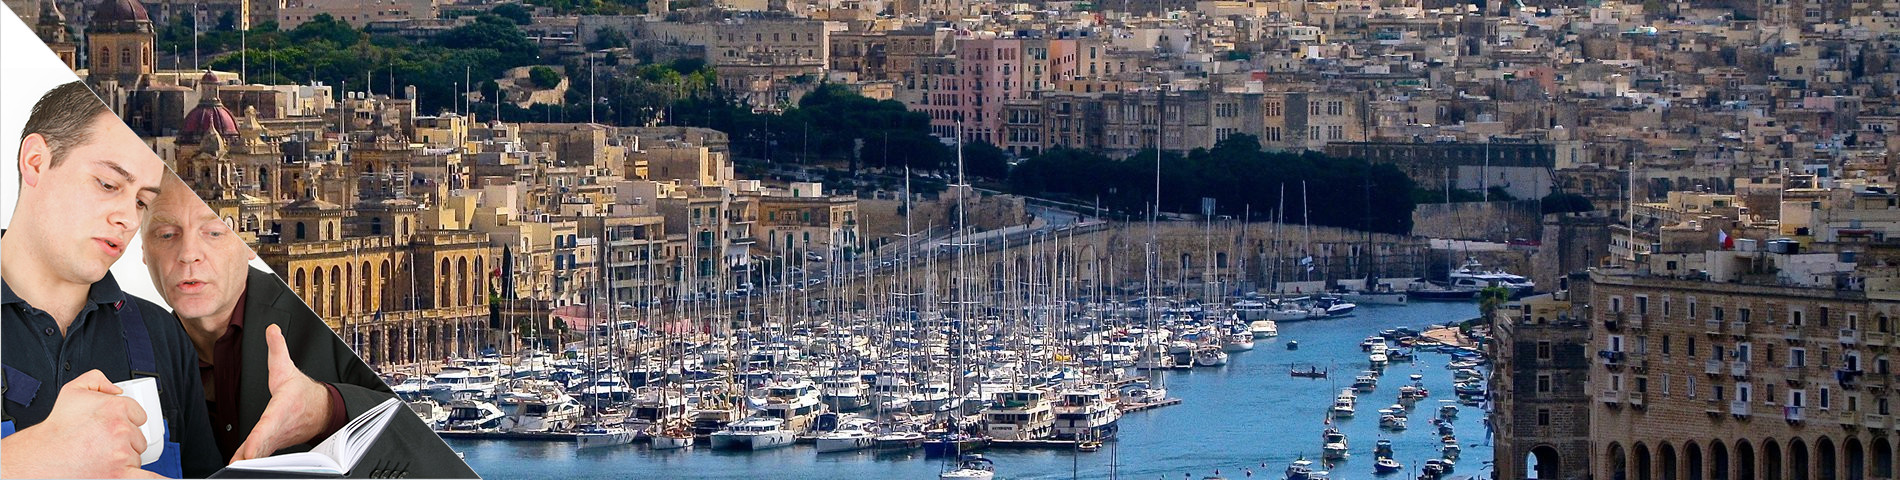 Valletta - One-to-One